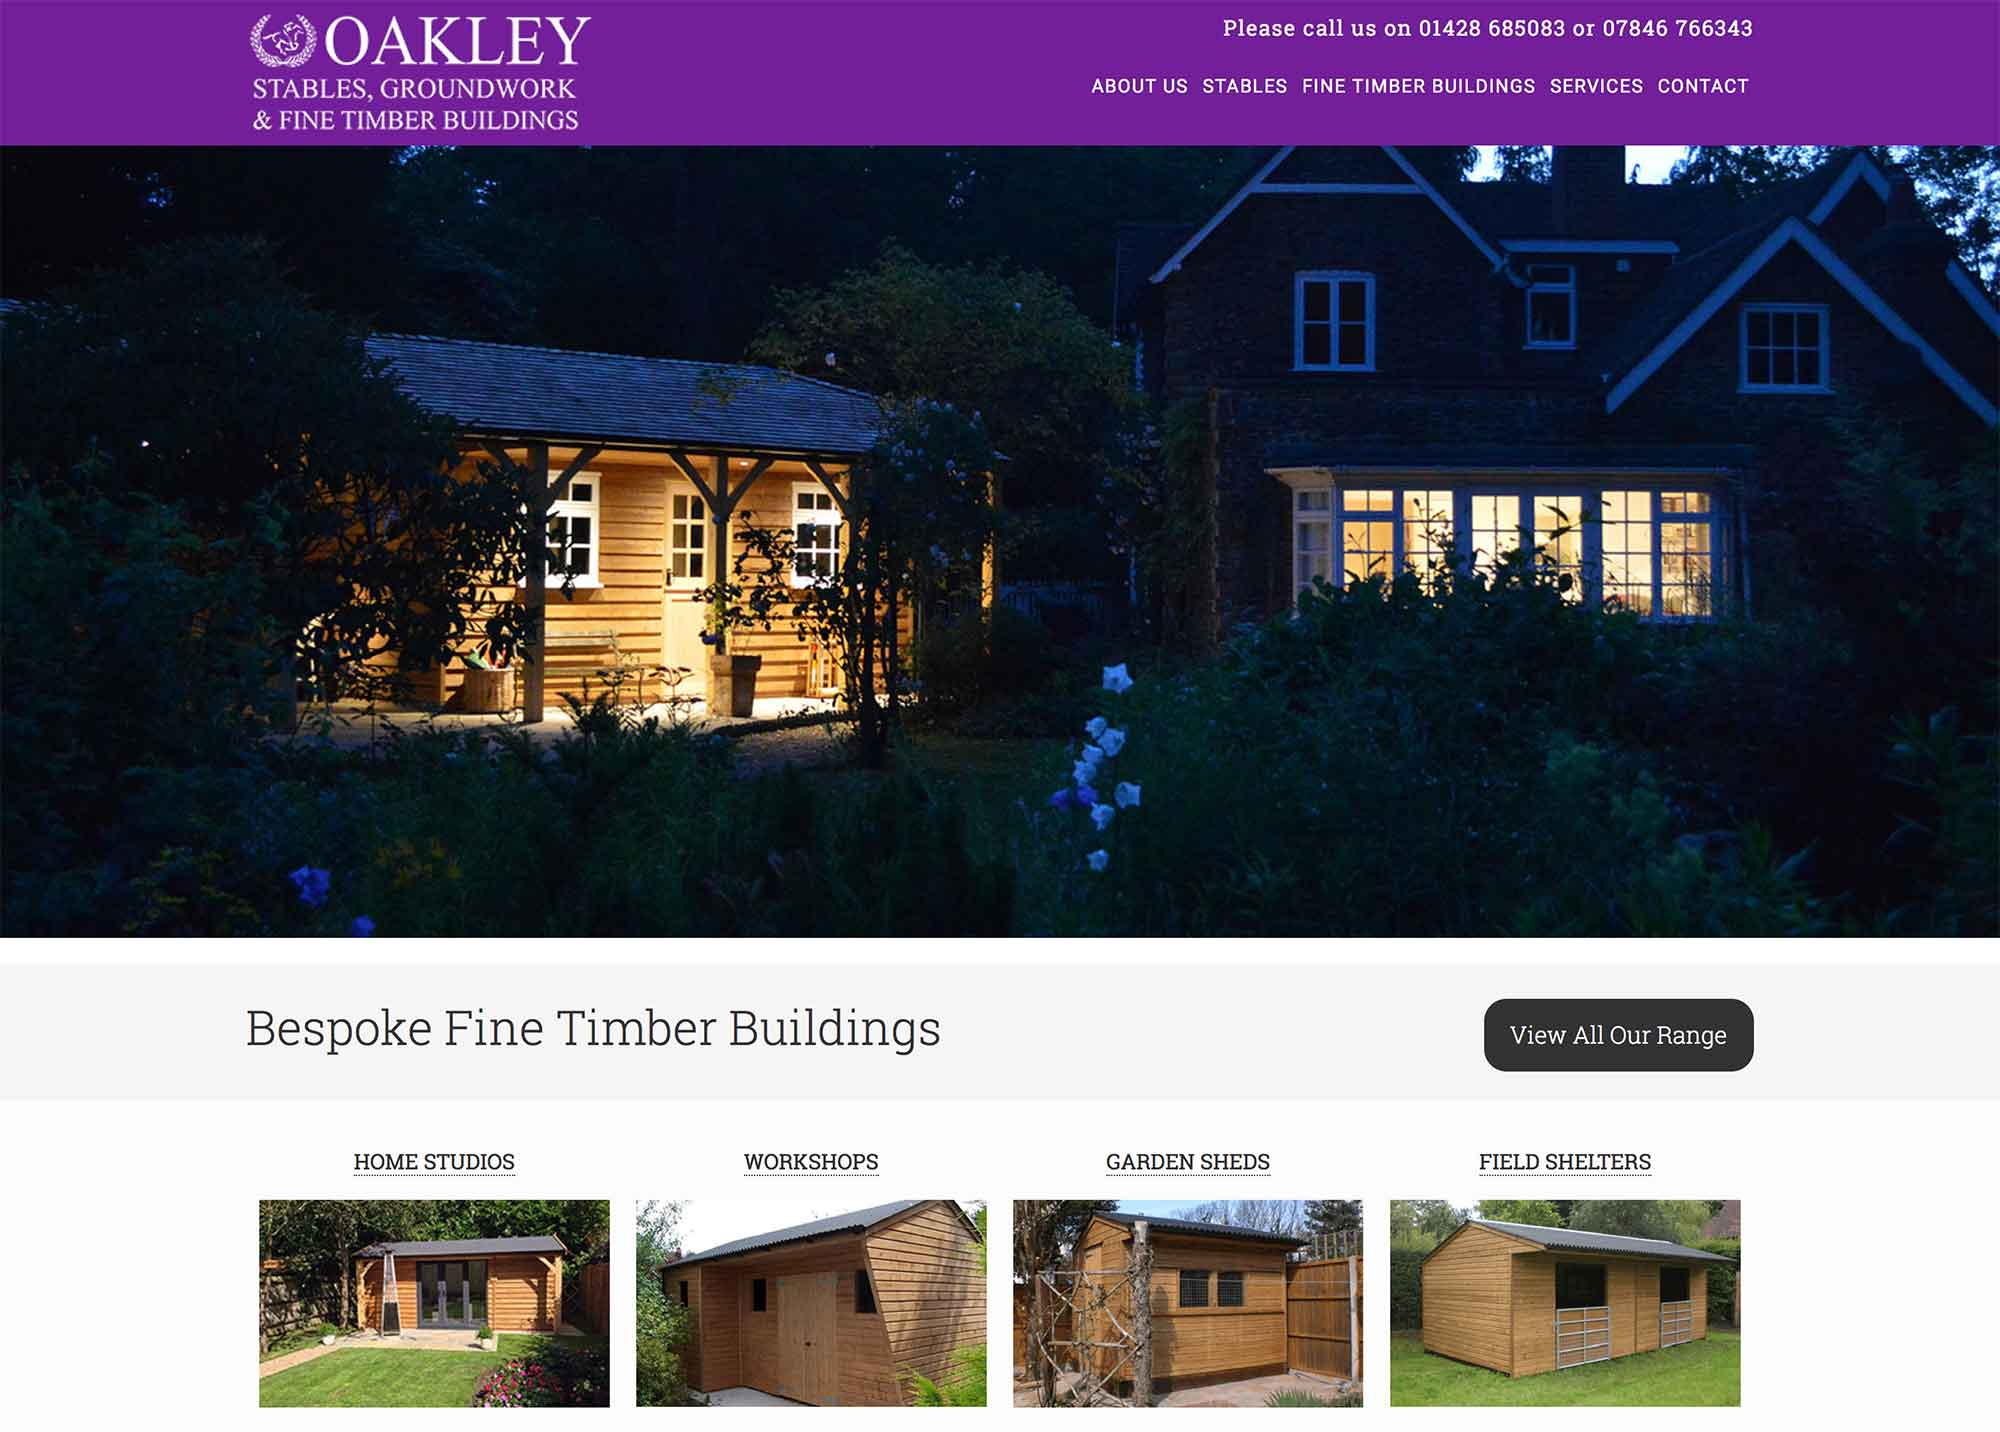 oakley stables